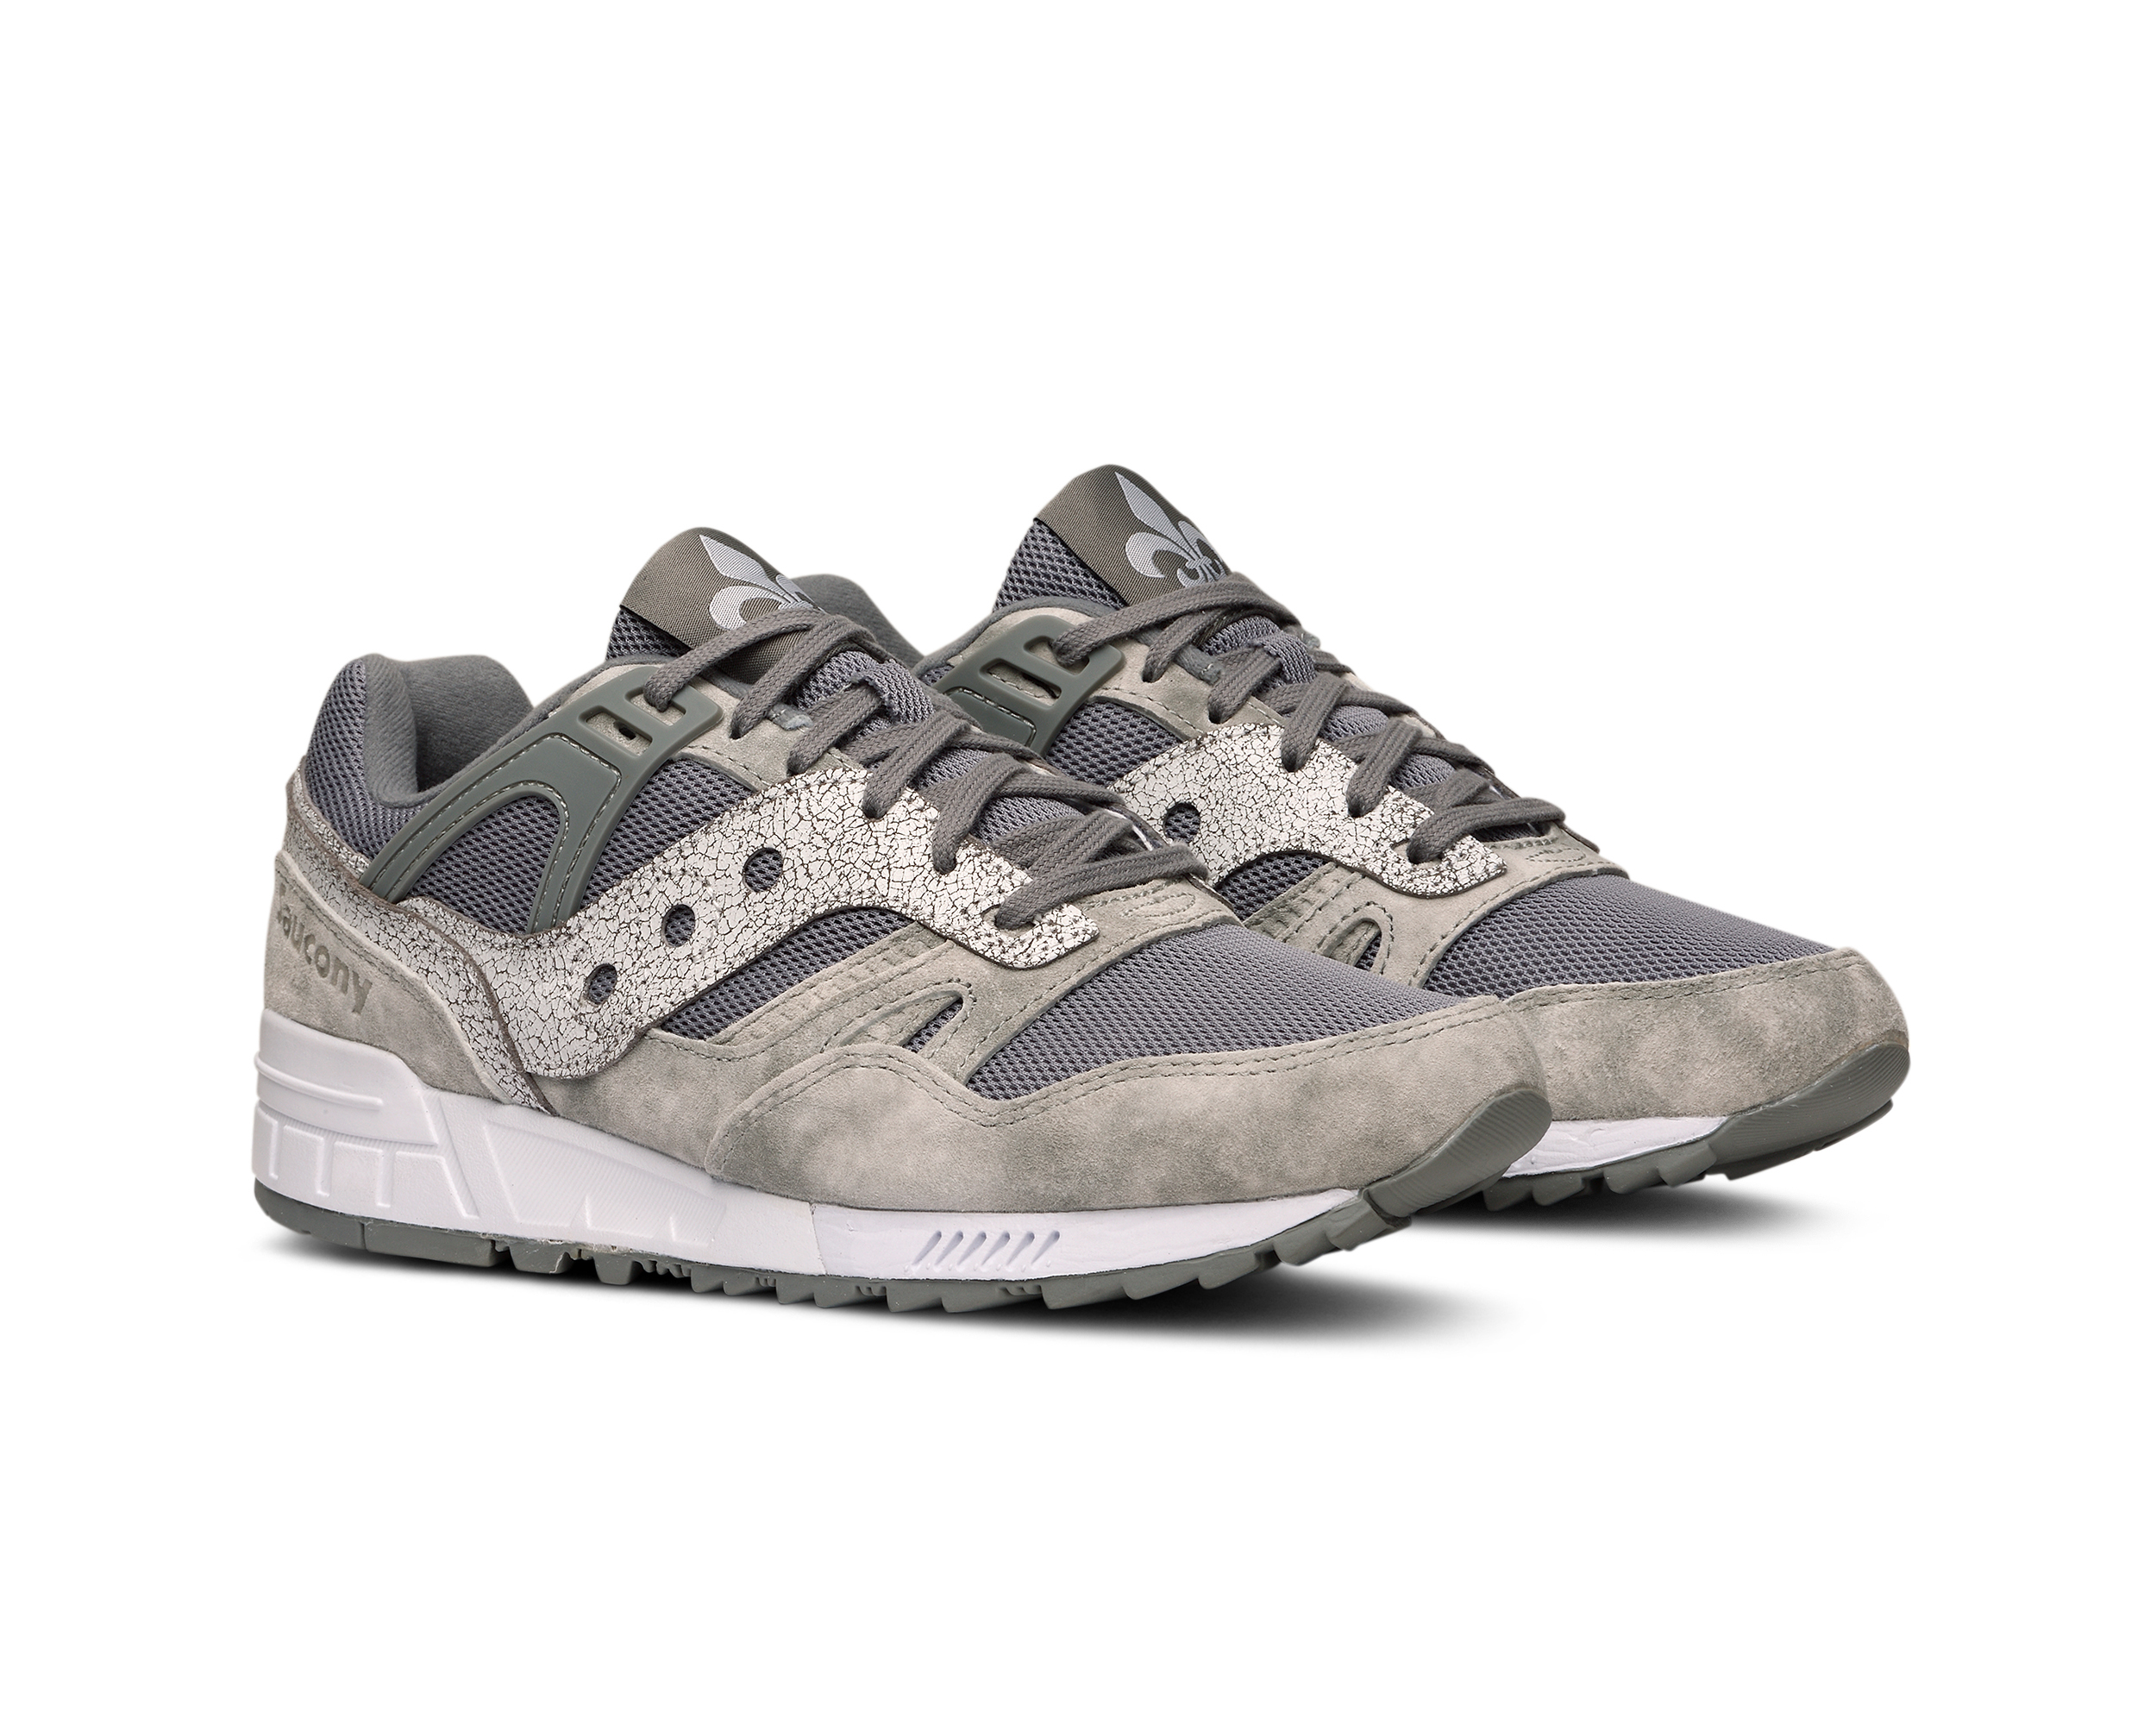 Saucony-Originals_70416-1_05